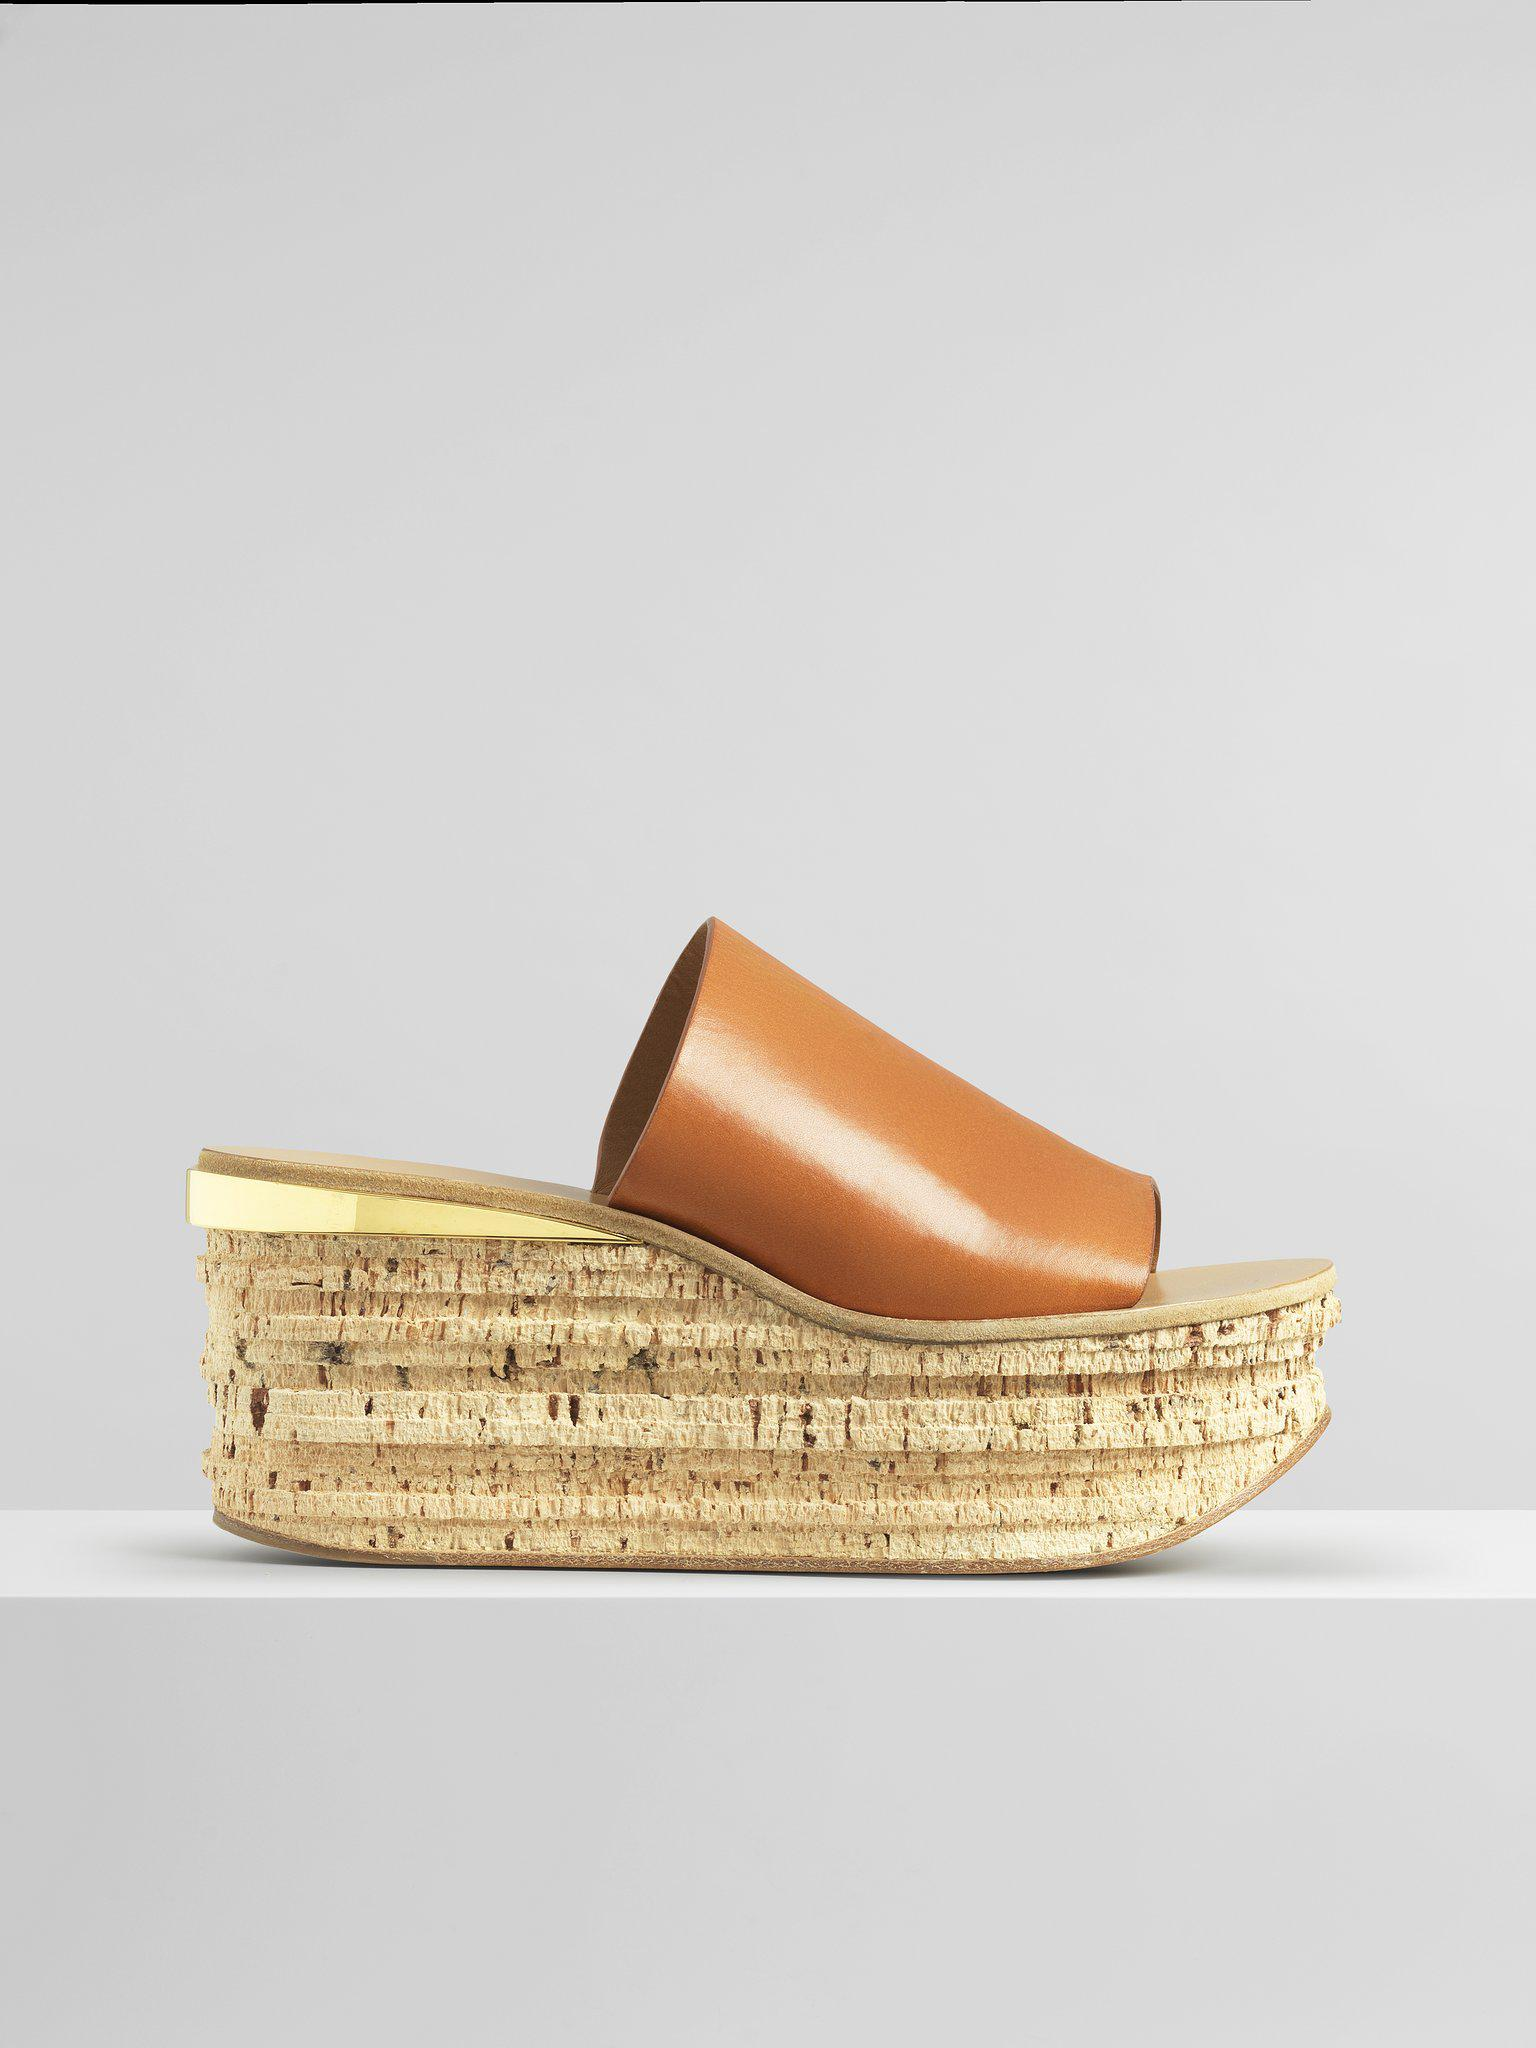 Chloé Camille Wedge Mules in Brown - Save 58% | Lyst